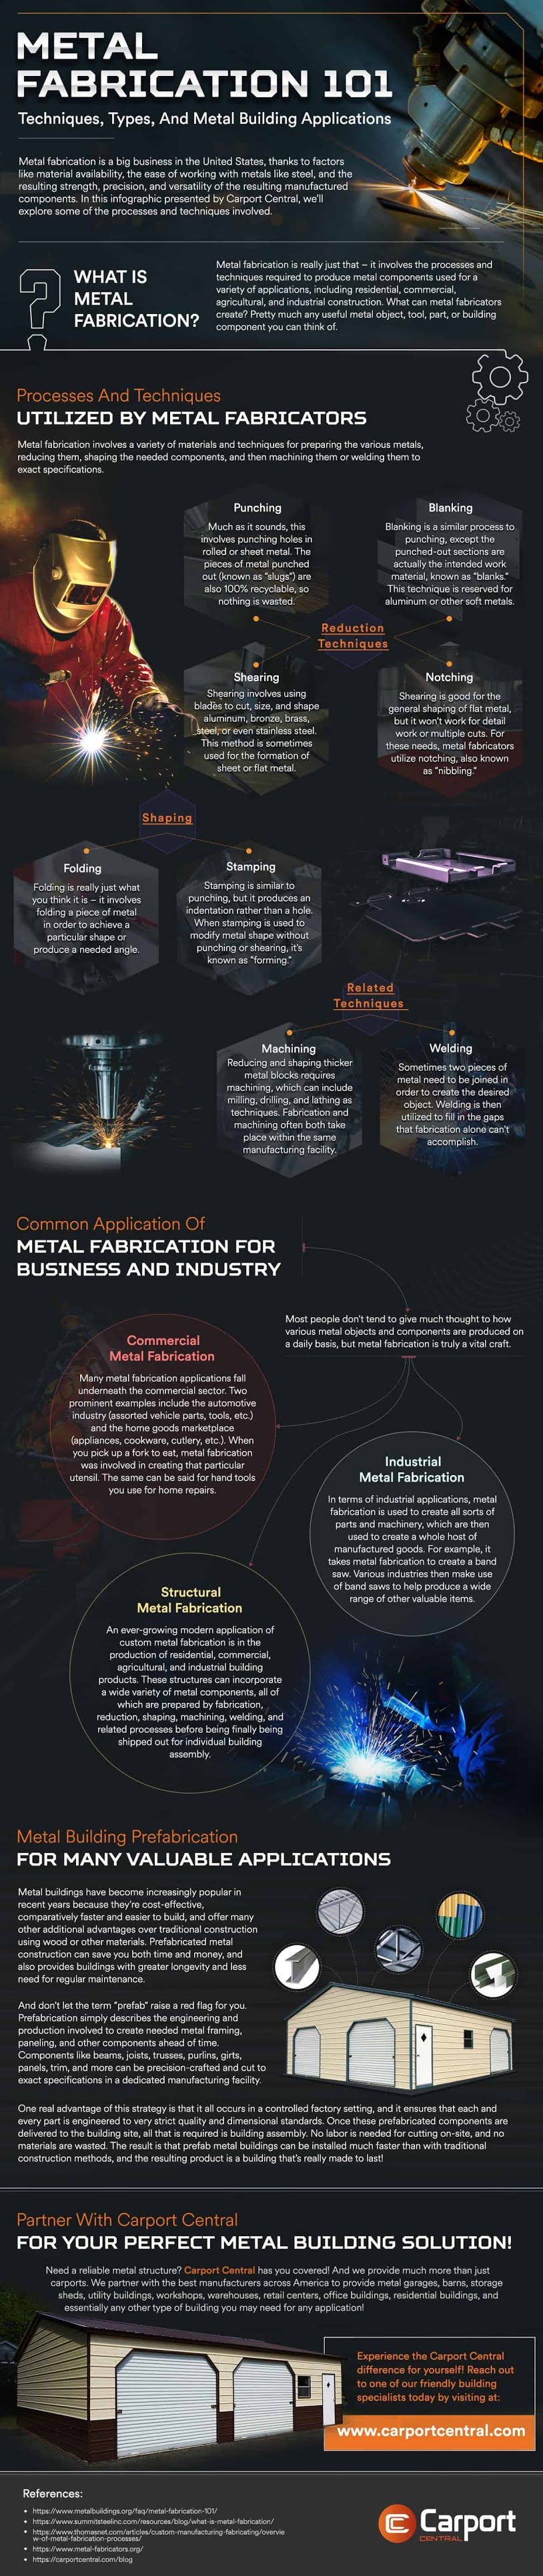 Metal Fabrication 101: Techniques, Types, and Metal Building Applications #infographic #Metal Fabrication #infographics #Metal Building